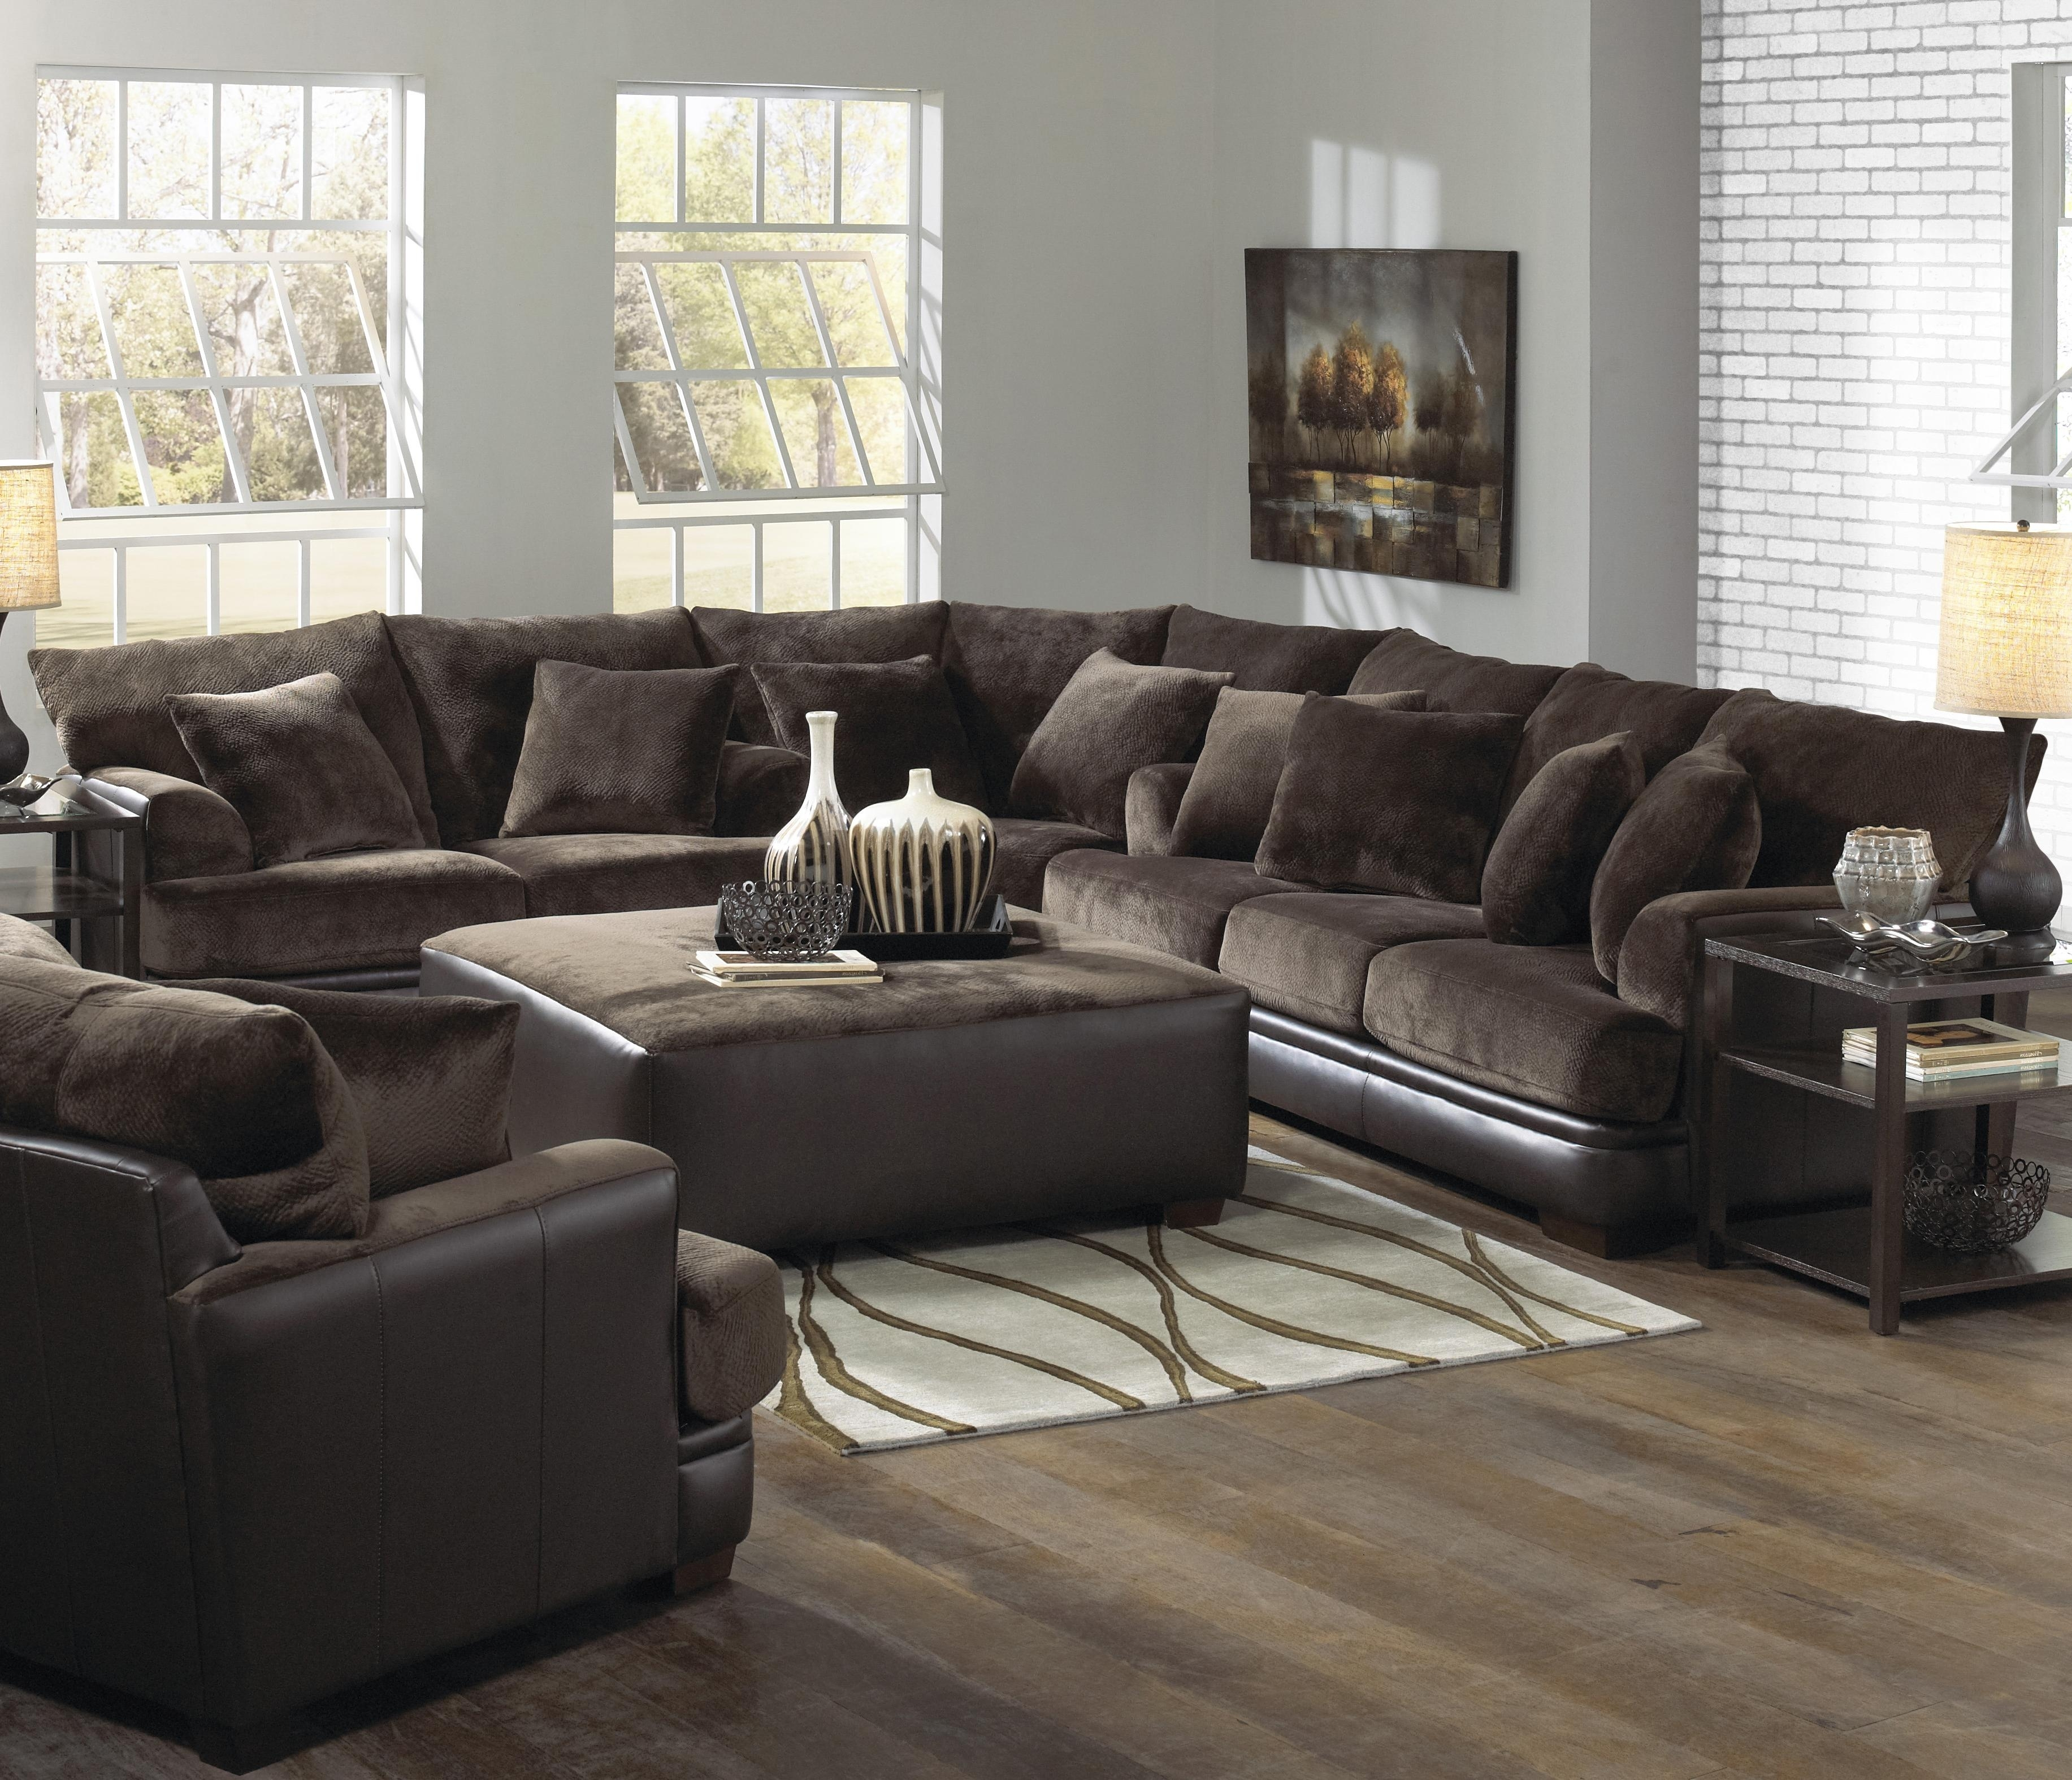 Furniture: Interesting Living Room Interior Using Large Sectional within Extra Large U Shaped Sectionals (Image 8 of 15)